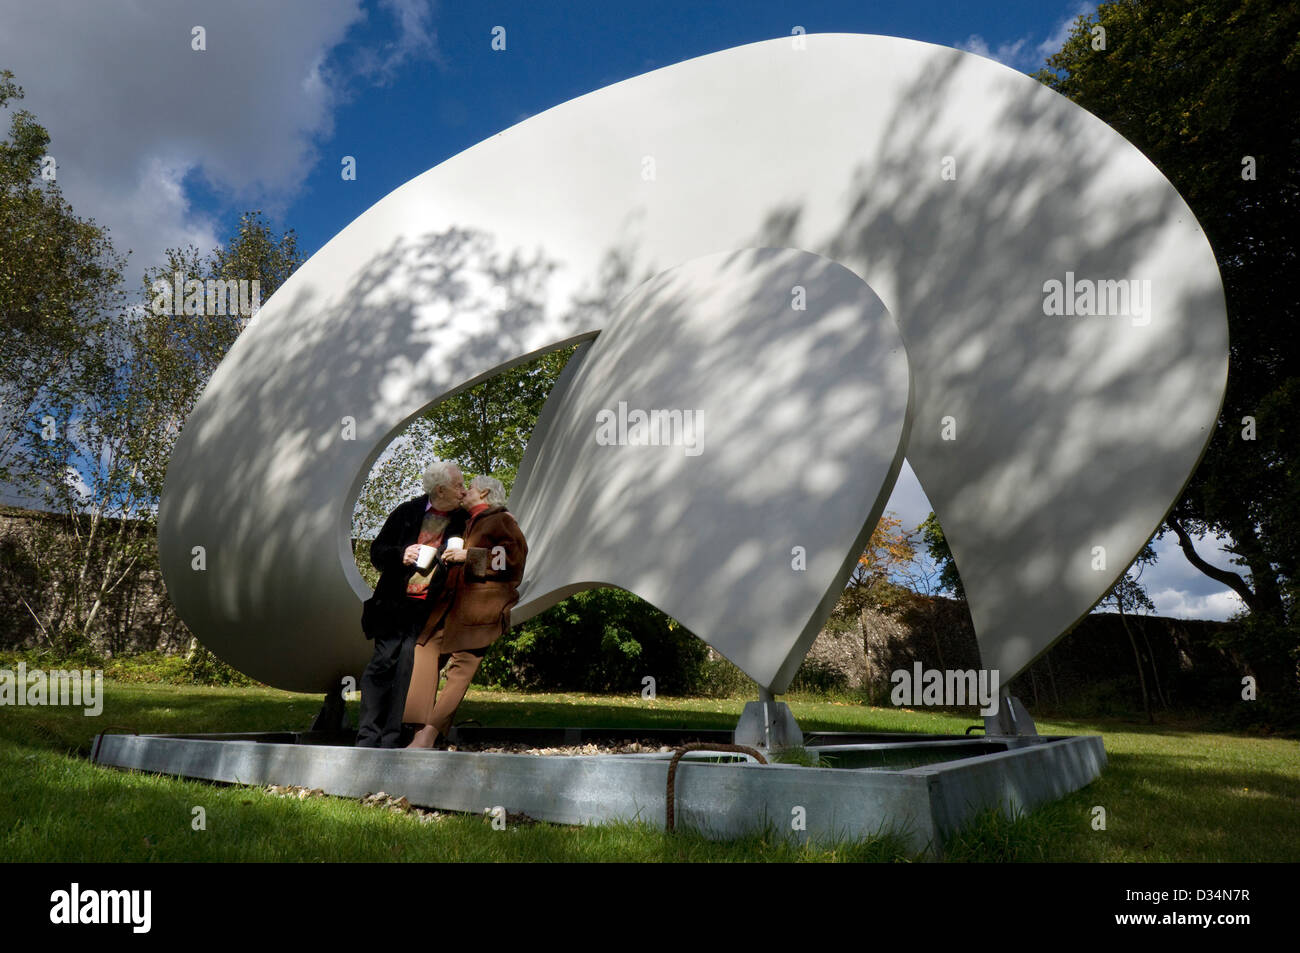 Wilfred and Jeamette  Cass. founders of the Cass Sculpture Foundation, also known as Sculpture at Goodwood. - Stock Image